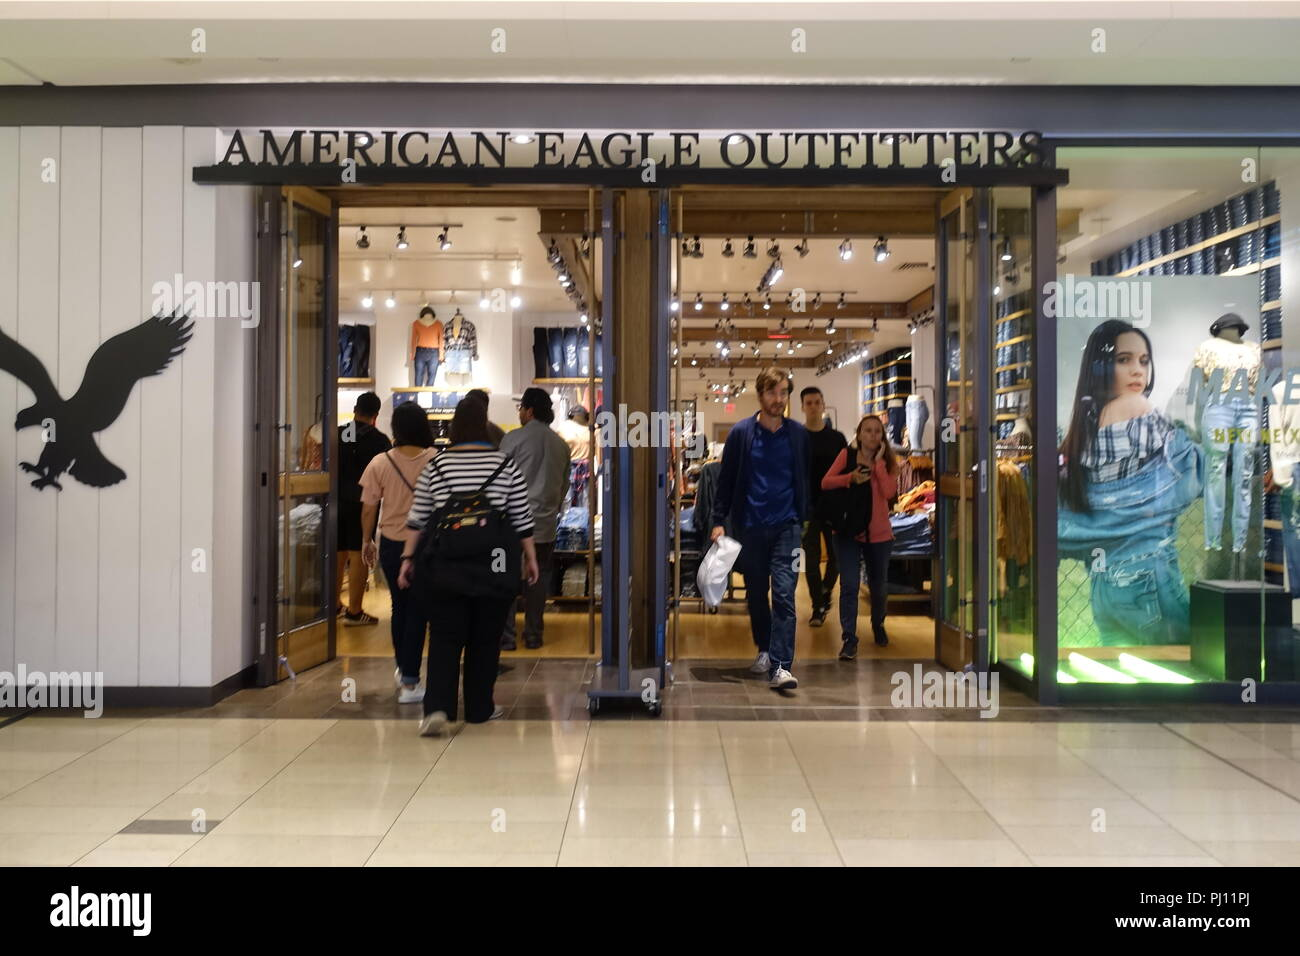 August 31 2018 People Are Entering And Exiting At American Eagle Outfitters Store Inside Mall